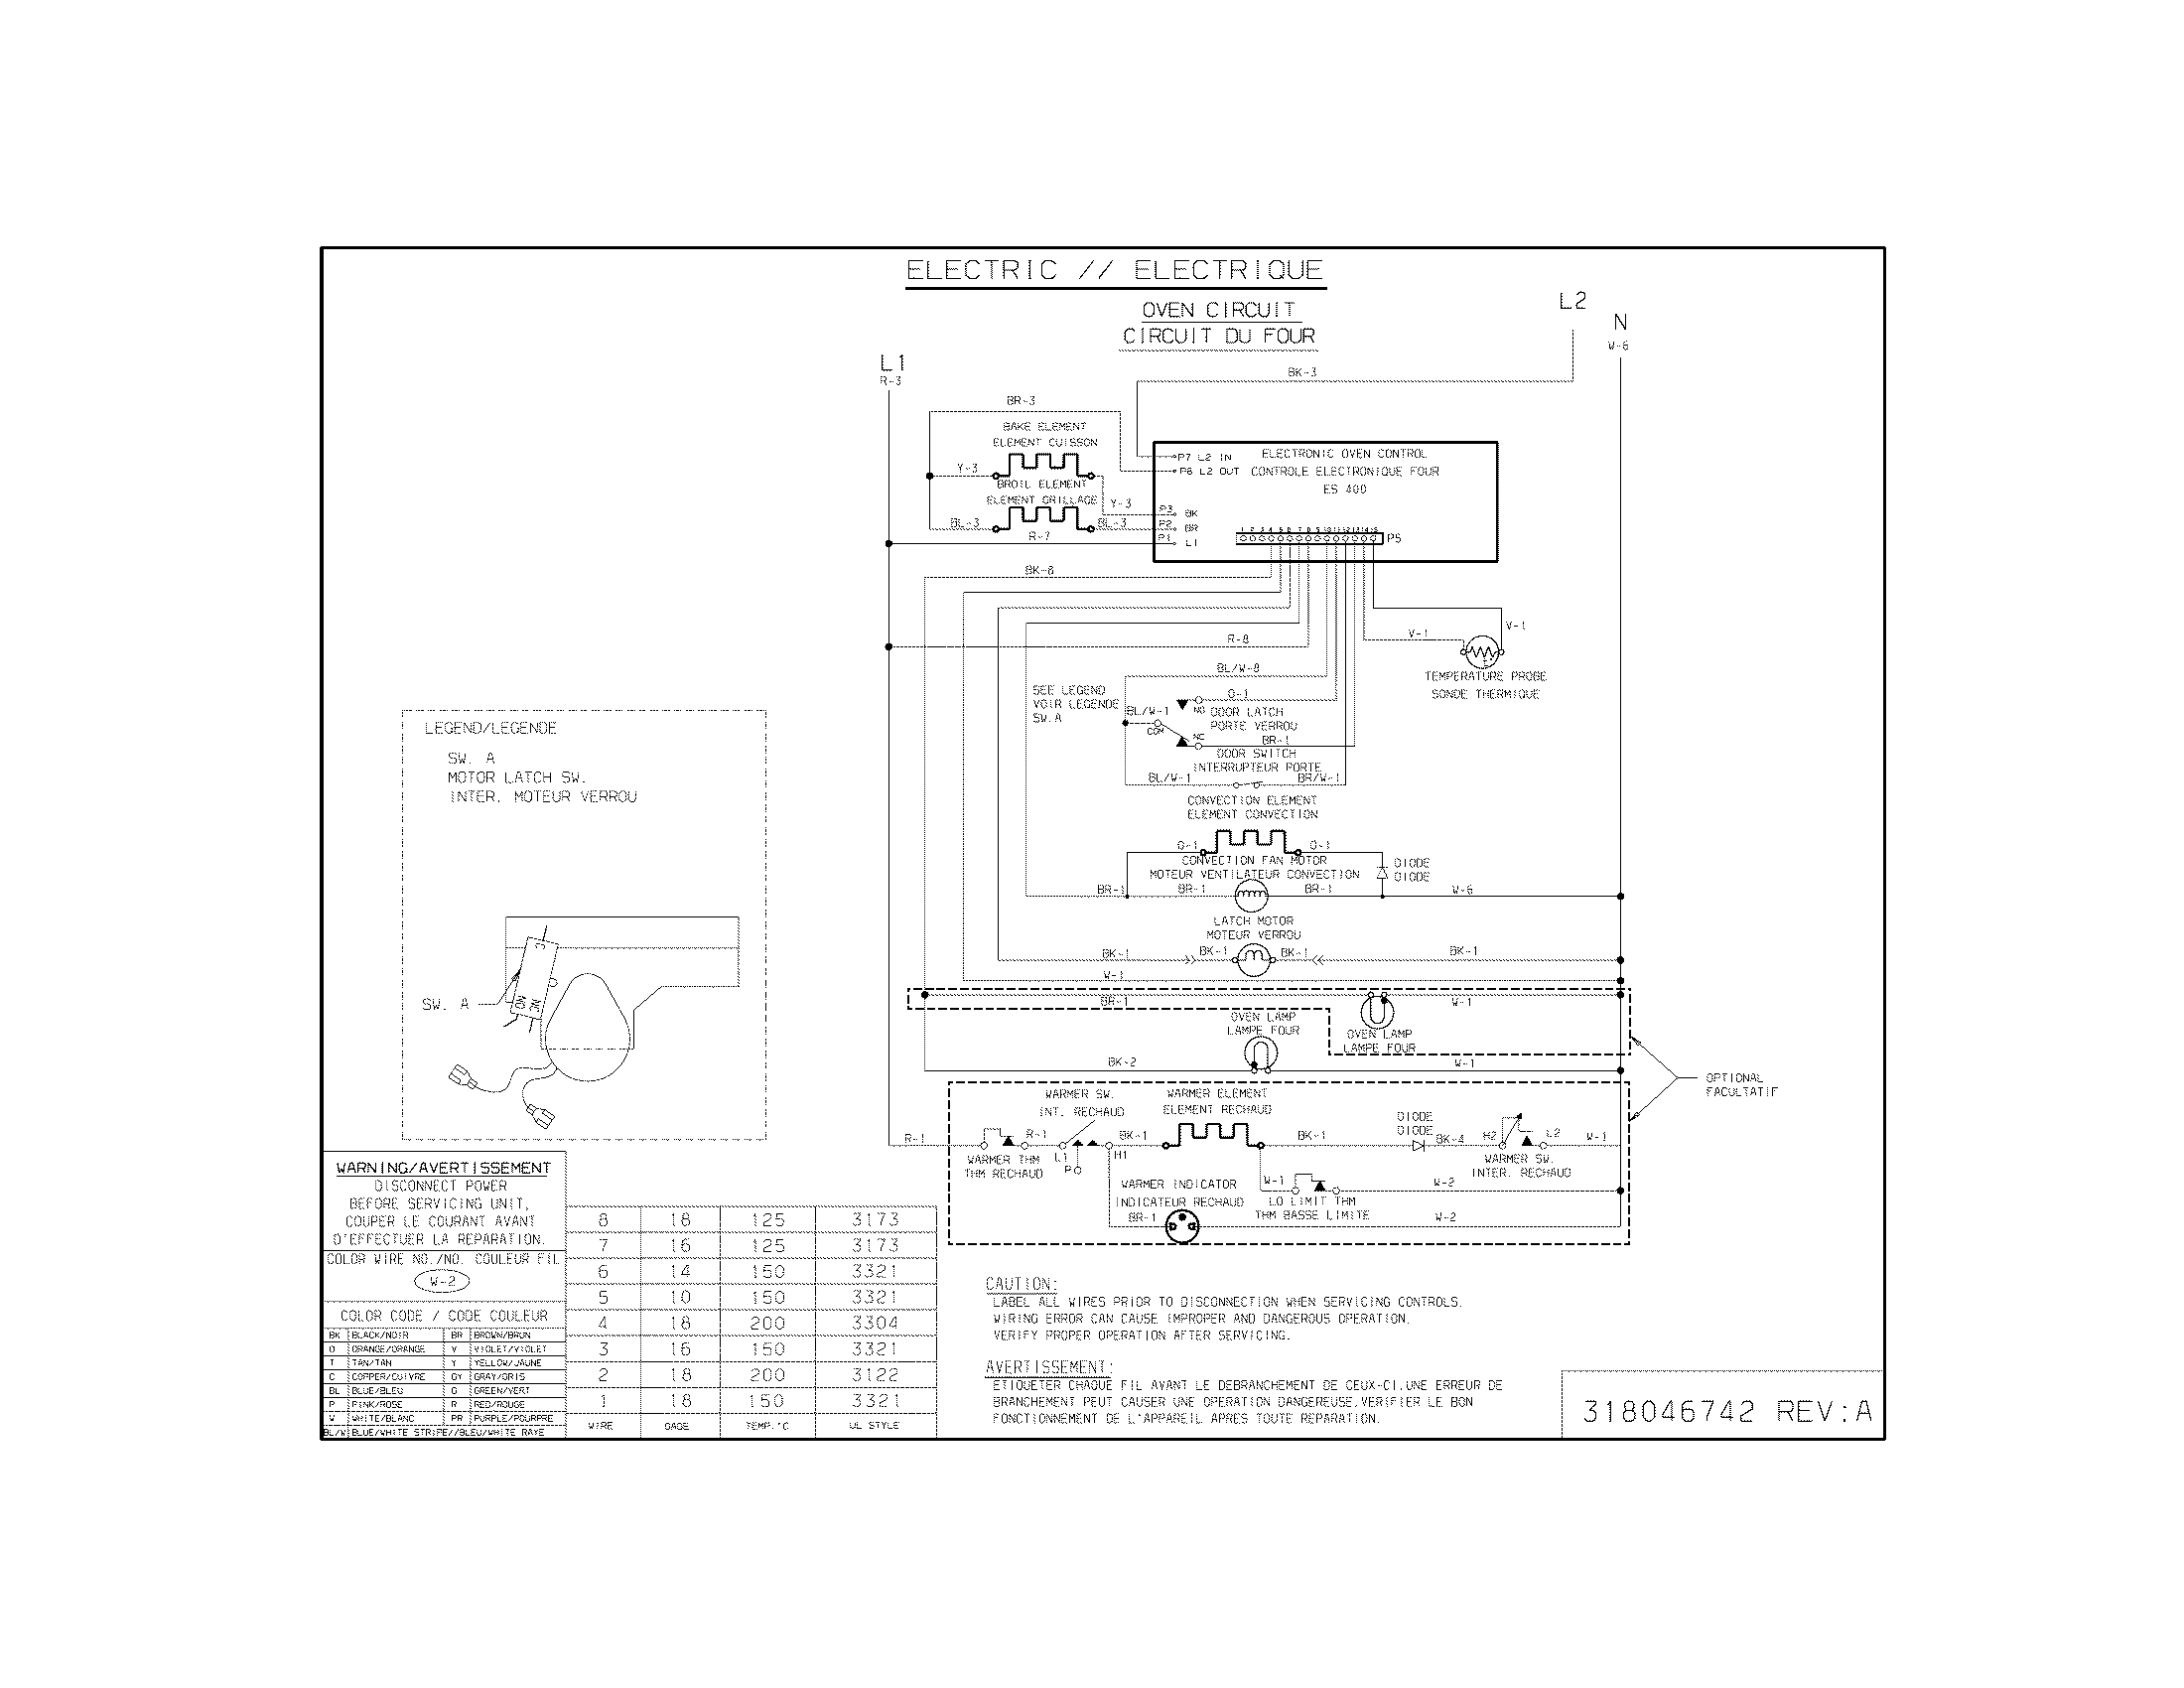 Electrolux Wiring Diagram | Wiring Diagram on electrolux 2100 vacuum parts diagram, electrolux oven wiring diagram, frigidaire oven wiring diagram,